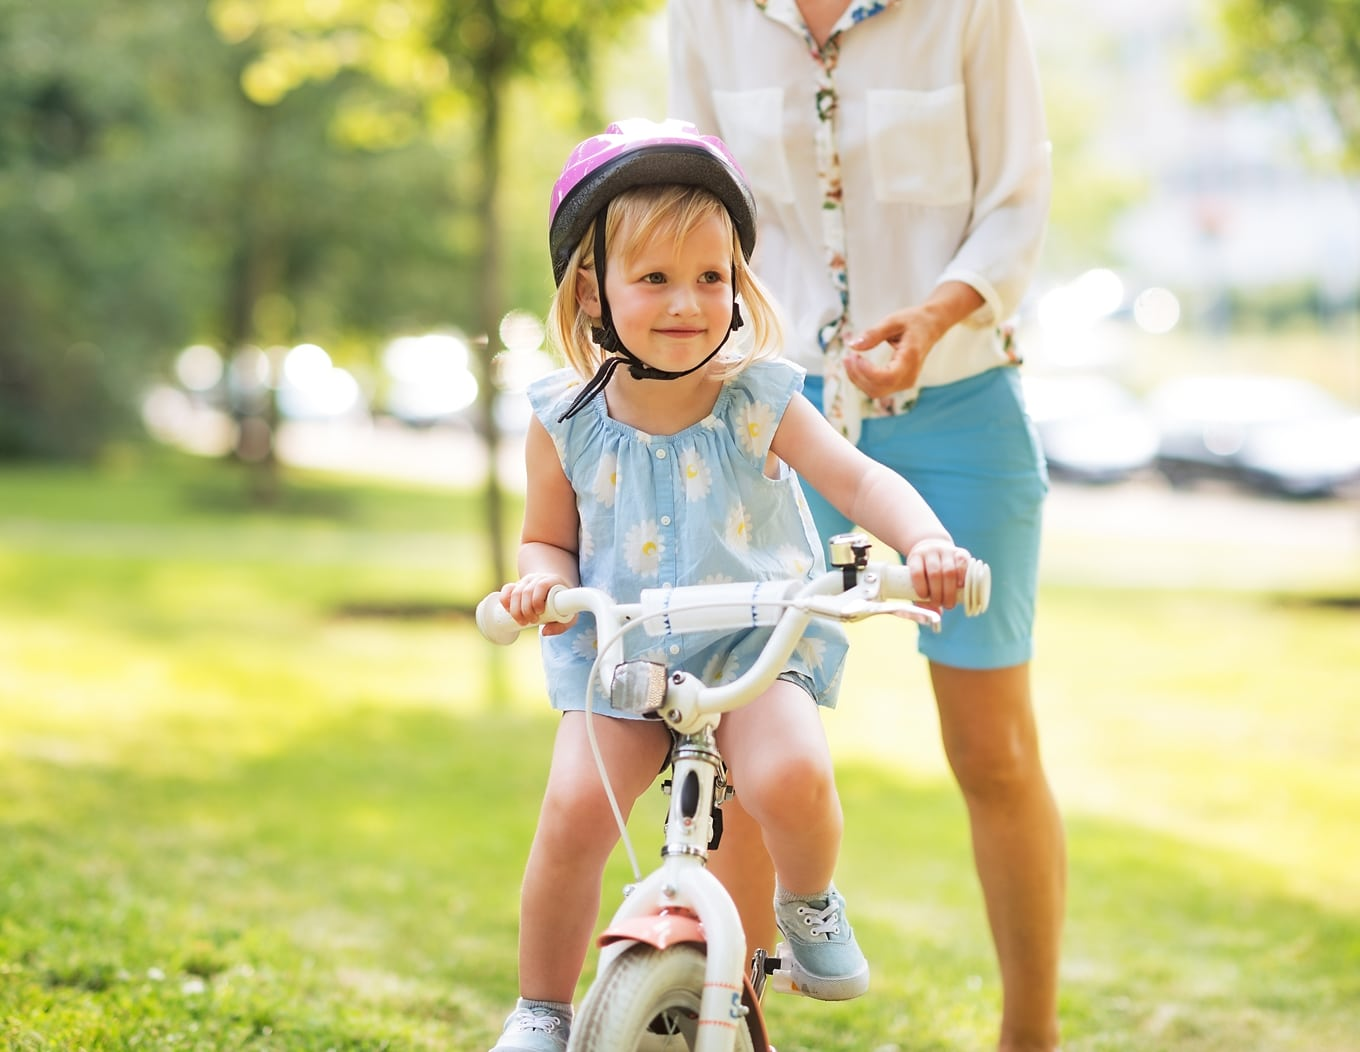 Ditch the training wheels in 30 minutes or less with proven tips to get your kid from scared to confident about riding a bike.